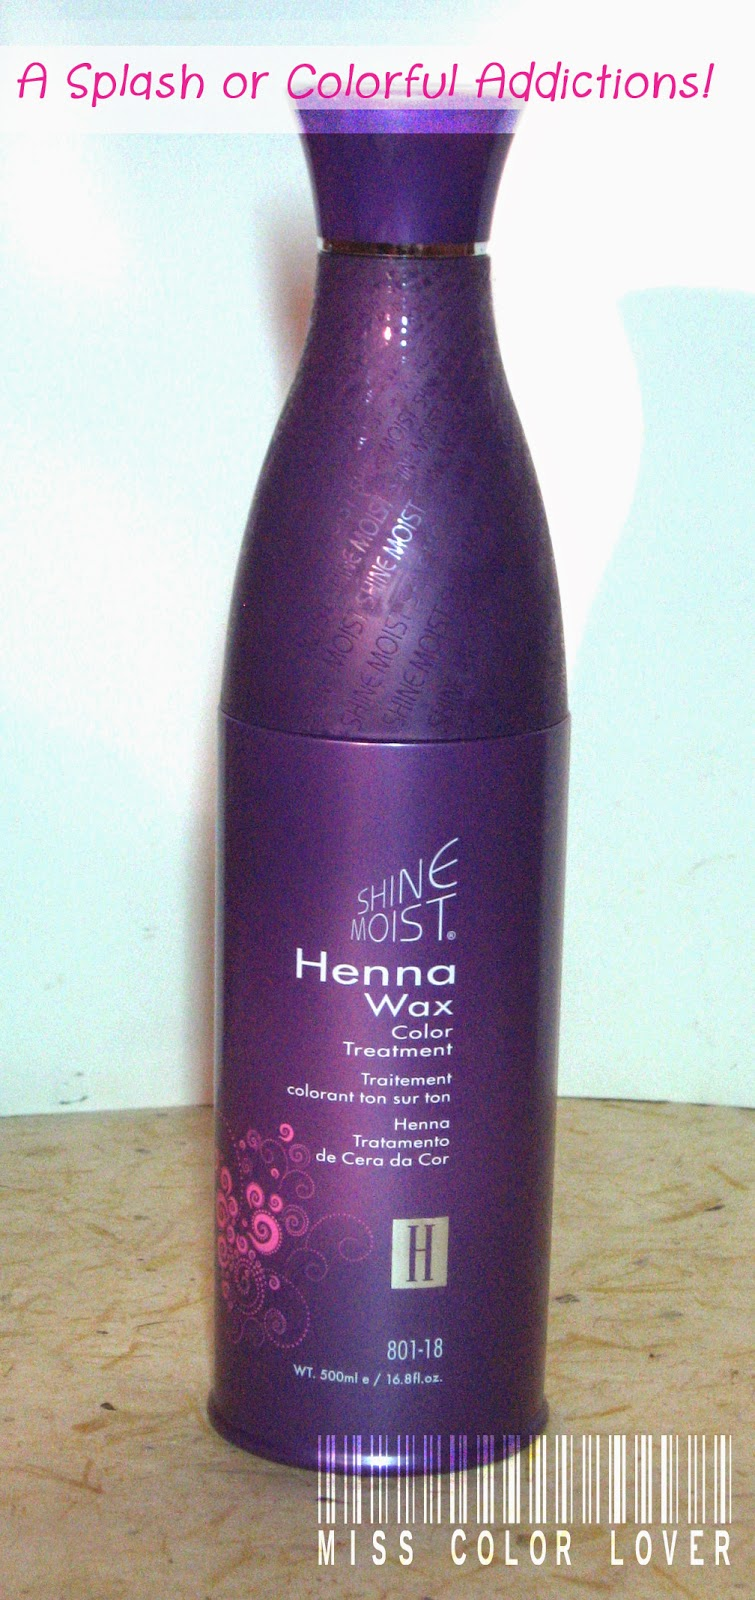 A Splash Of Colorful Addictions Shine Moist Henna Wax Review